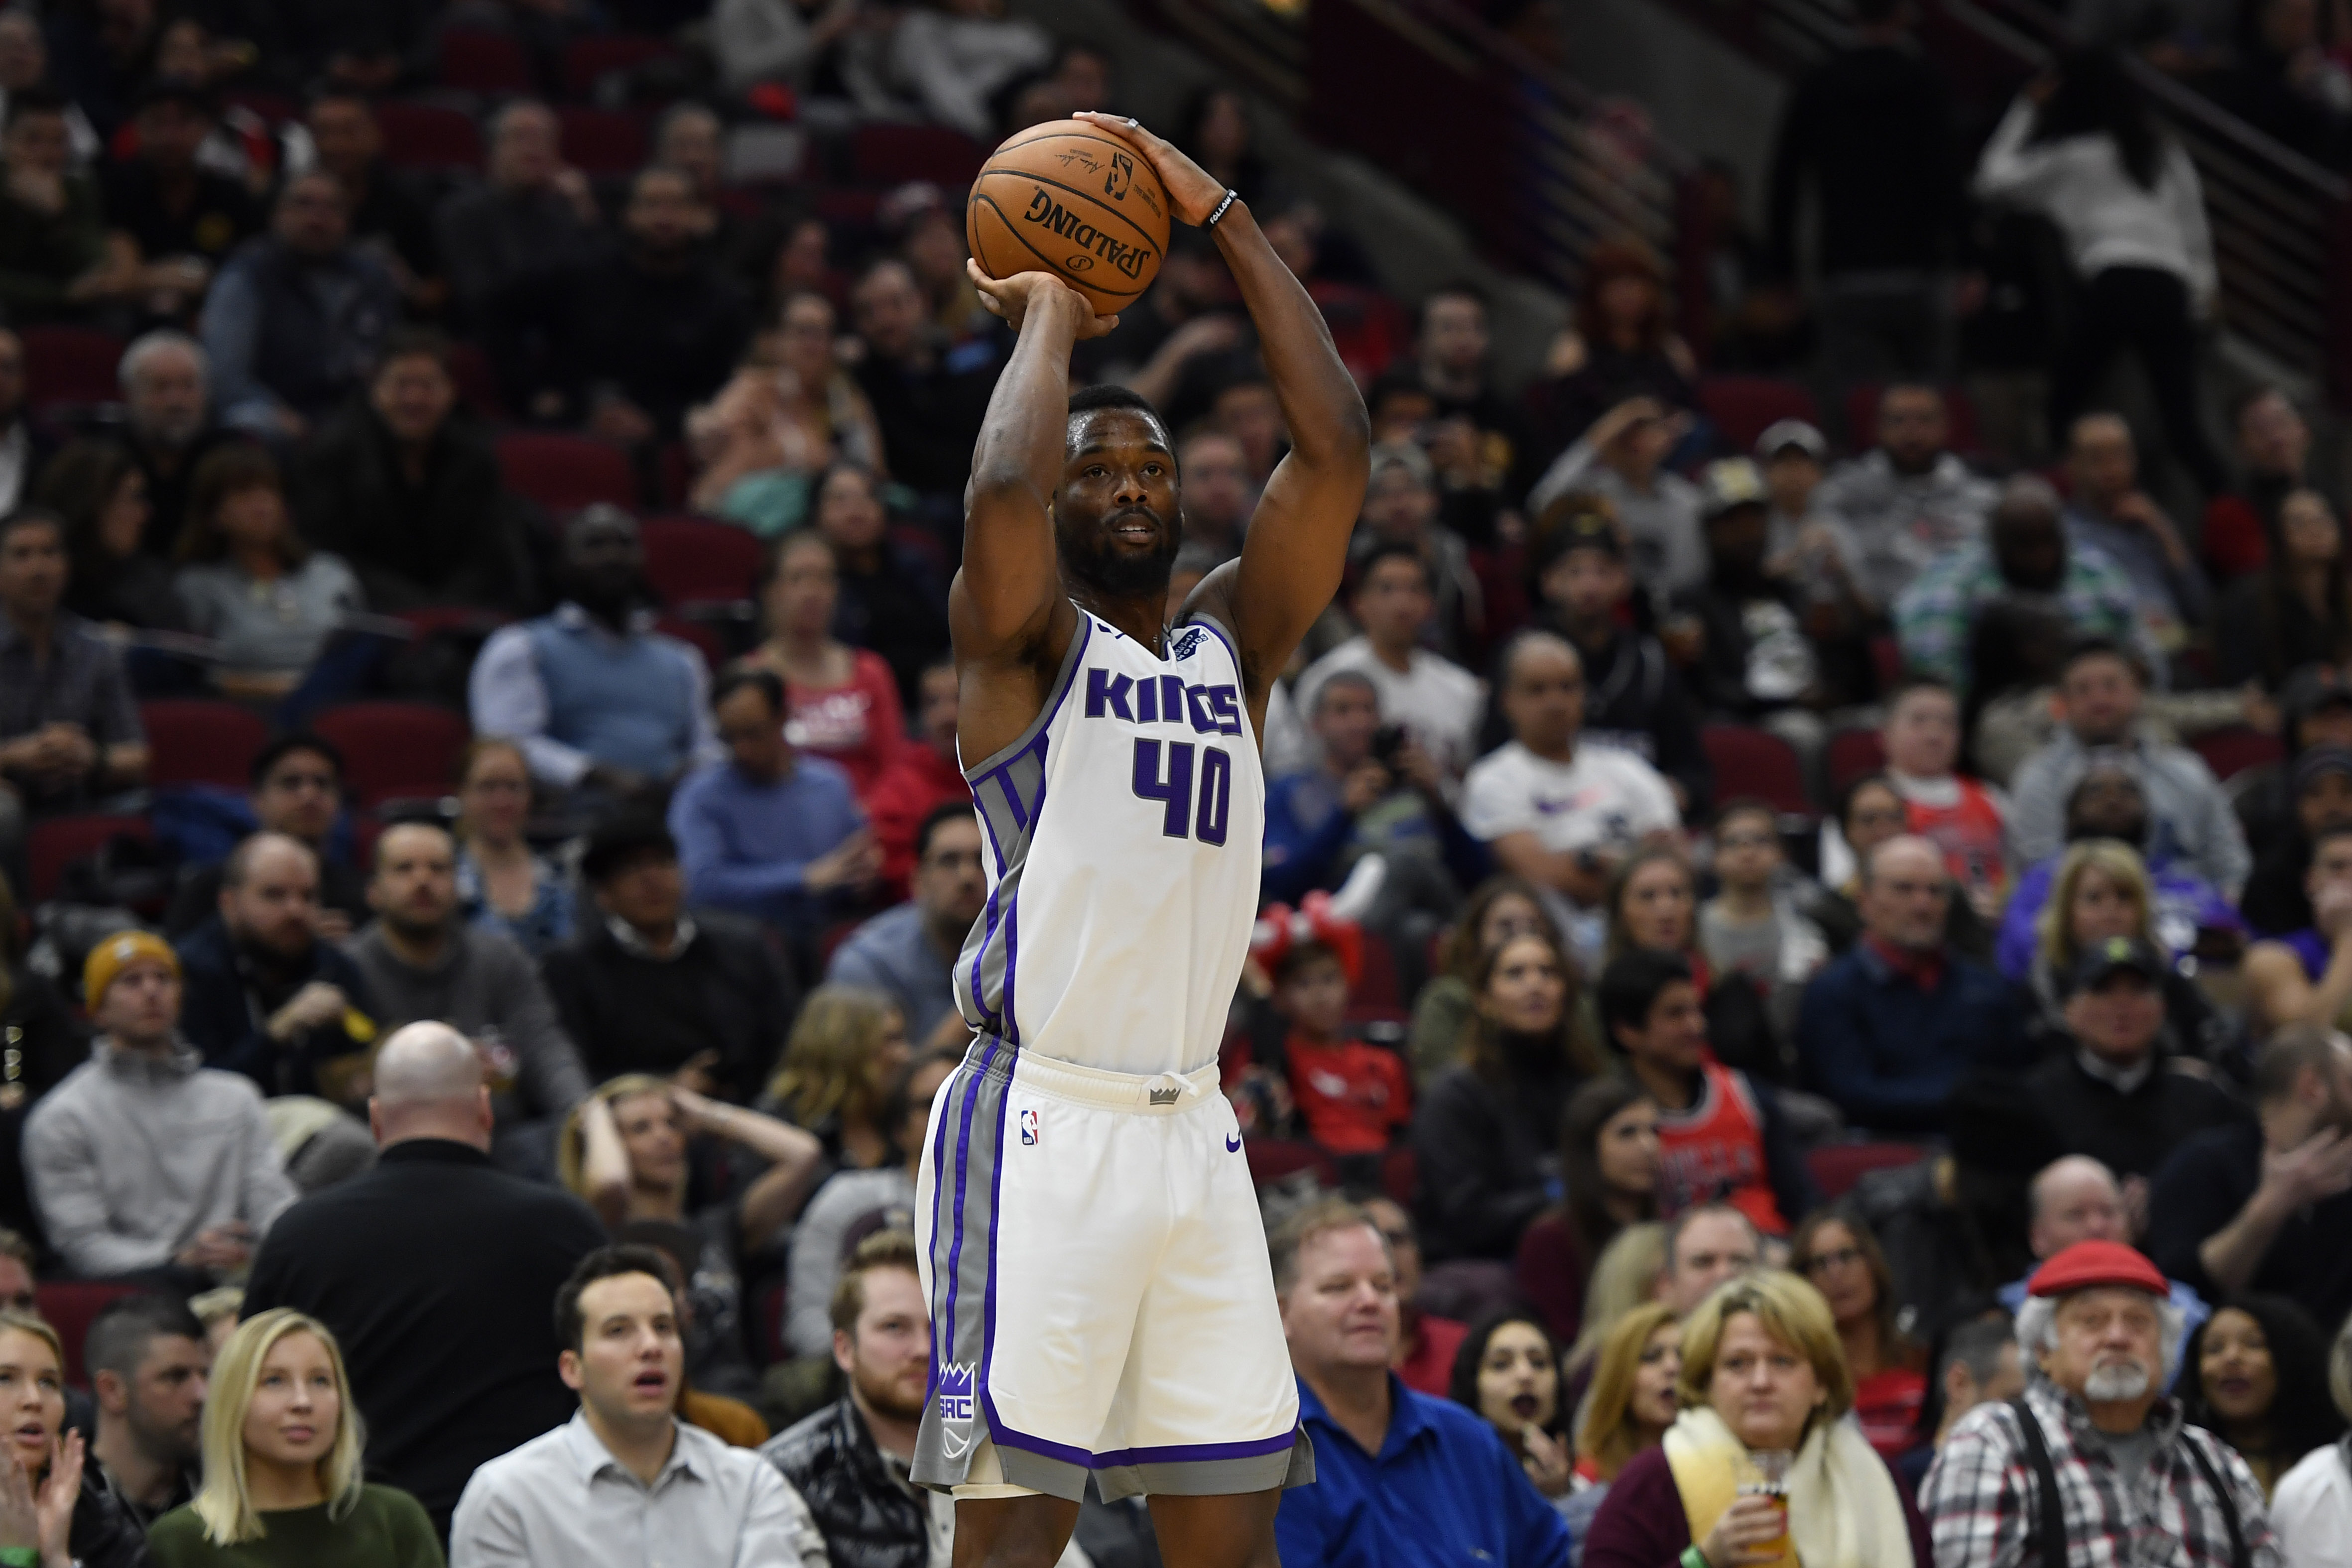 Sacramento Kings forward Harrison Barnes shoots in the second half against the Chicago Bulls at United Center.